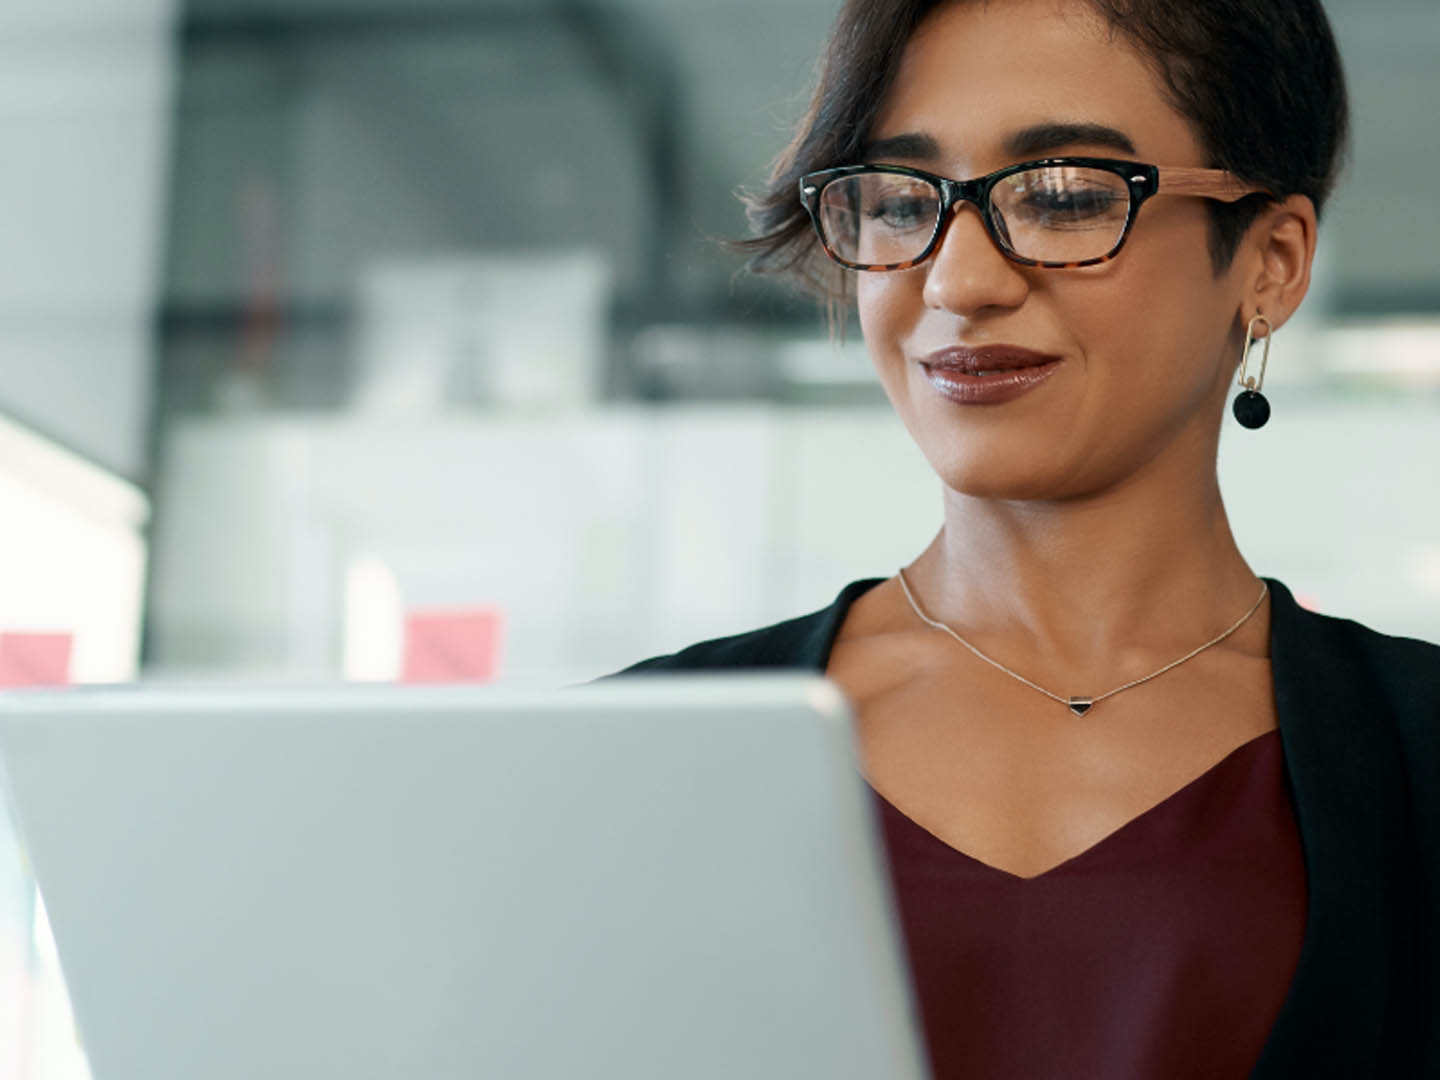 Woman wearing glasses looking at laptop.